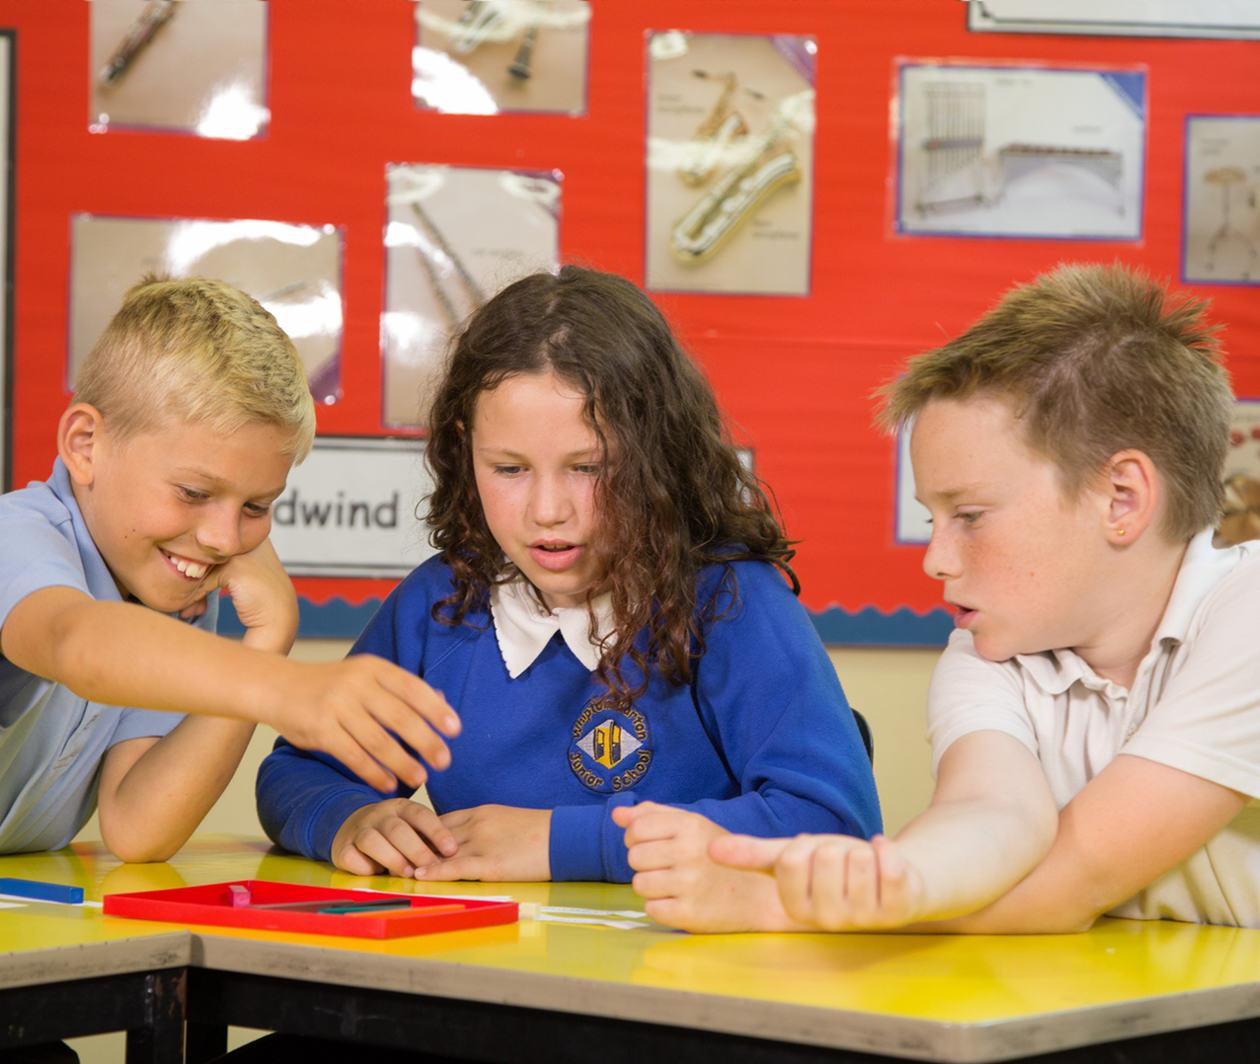 Supporting Active Participation in Lessons Through Pre-teaching